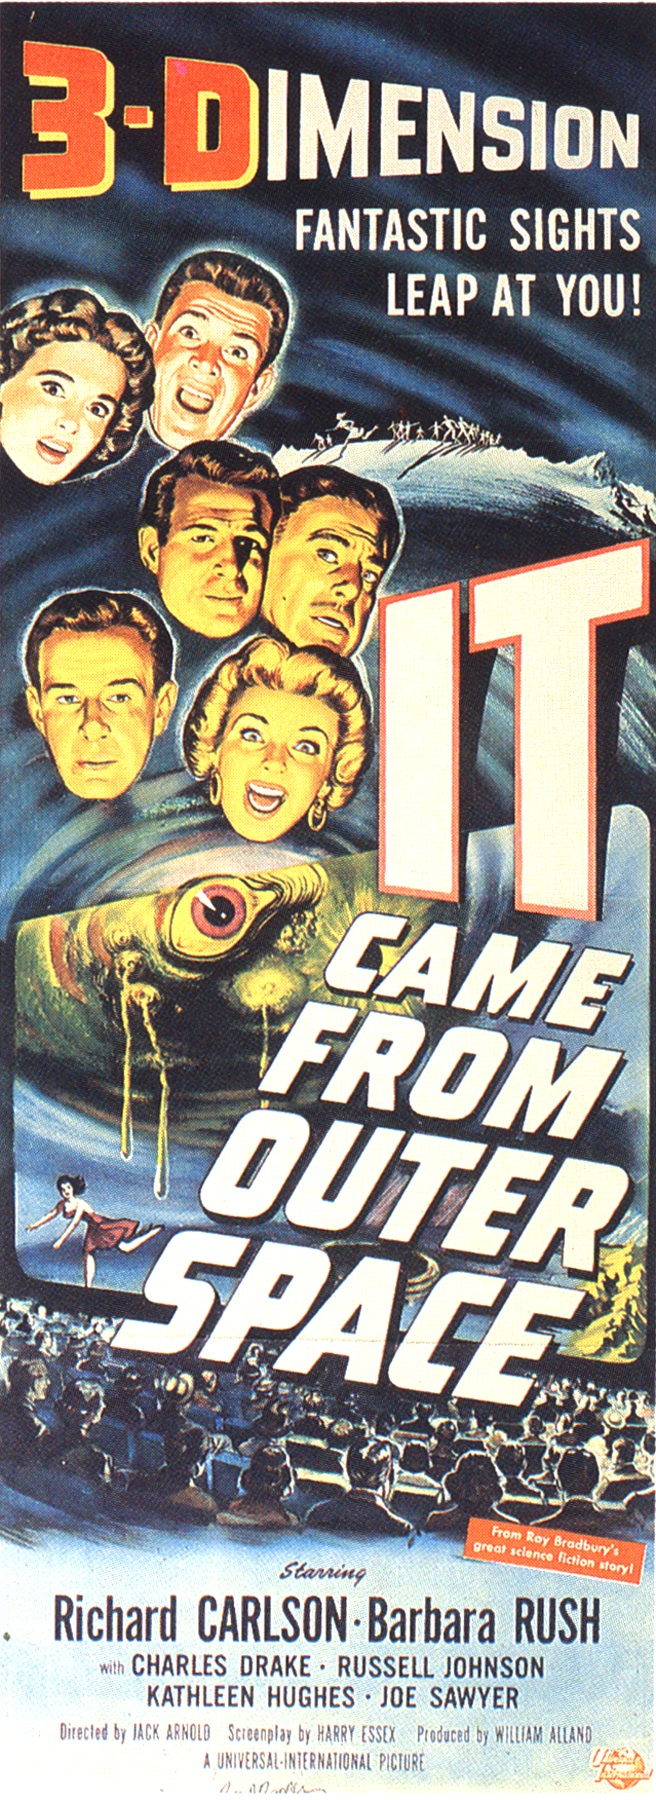 Joseph A. Smith, illustrator, It Came from Outer Space, 1953, gouache on board, art for insert card, Universal-International Pictures. Click to enlarge